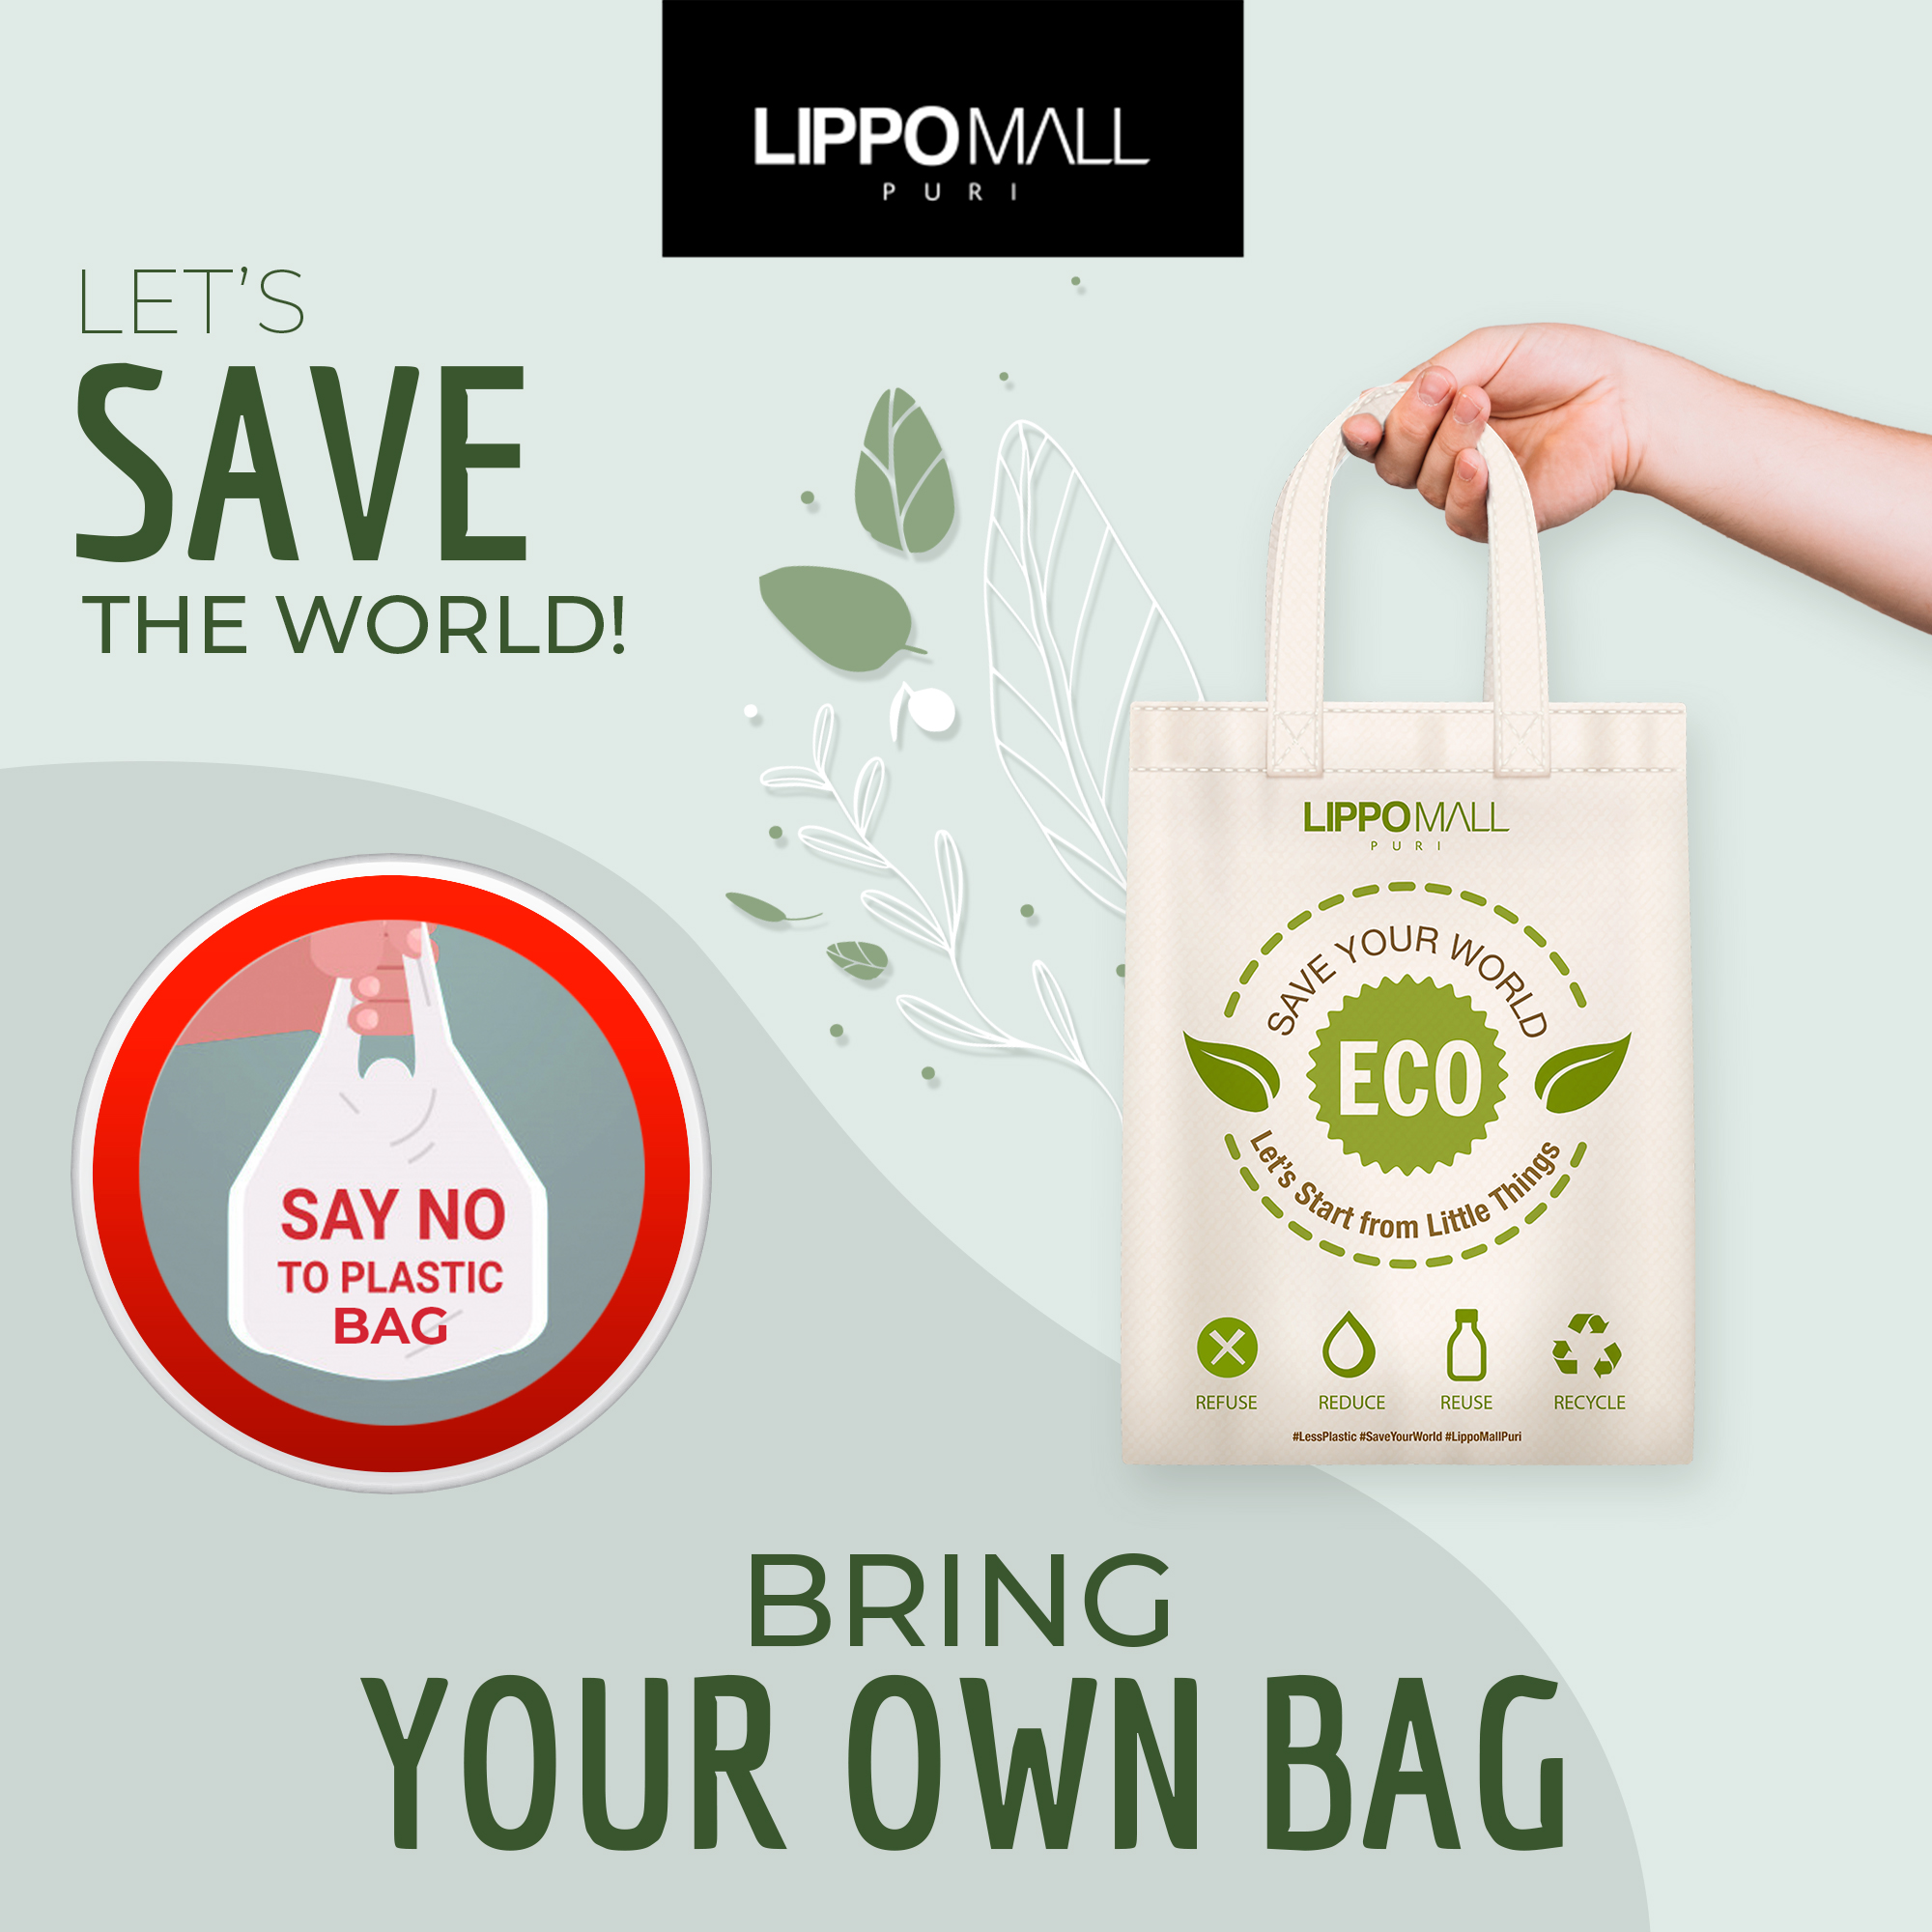 Bring your own bag in lippo mall puri st. moritz